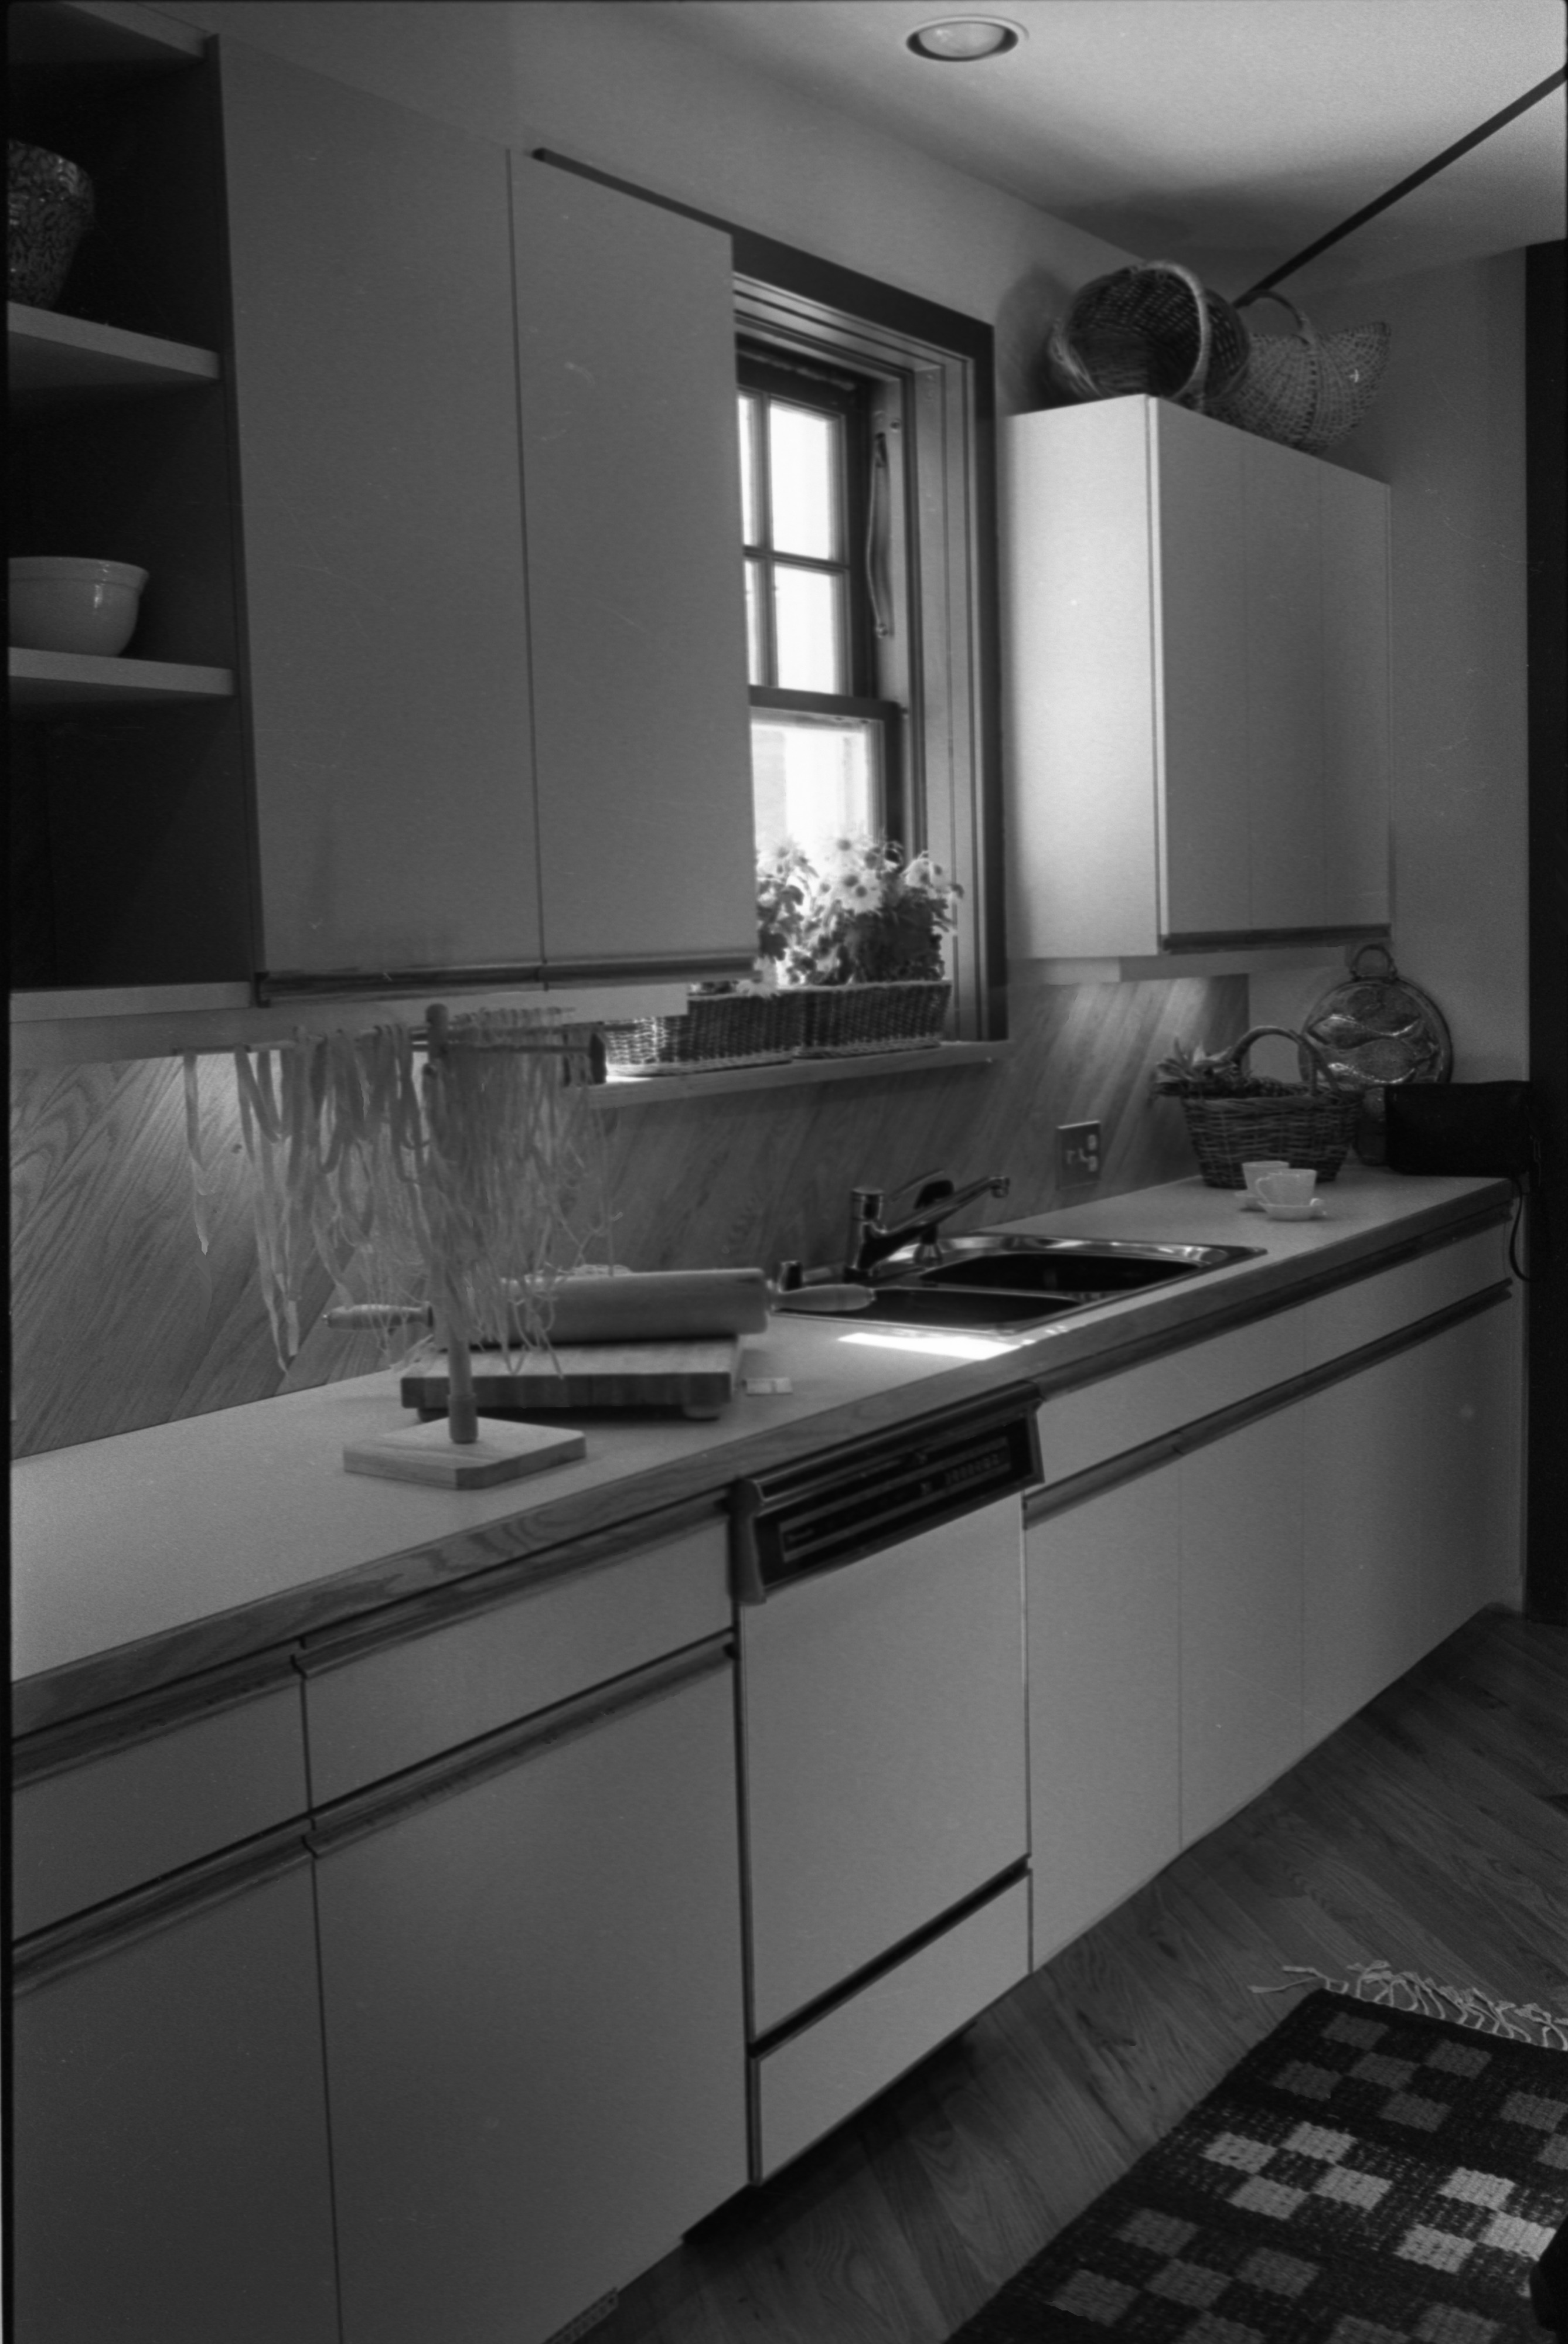 The Newly Remodeled Kitchen At The Hermitage House, 1808 Hermitage Rd, March 10, 1982 image